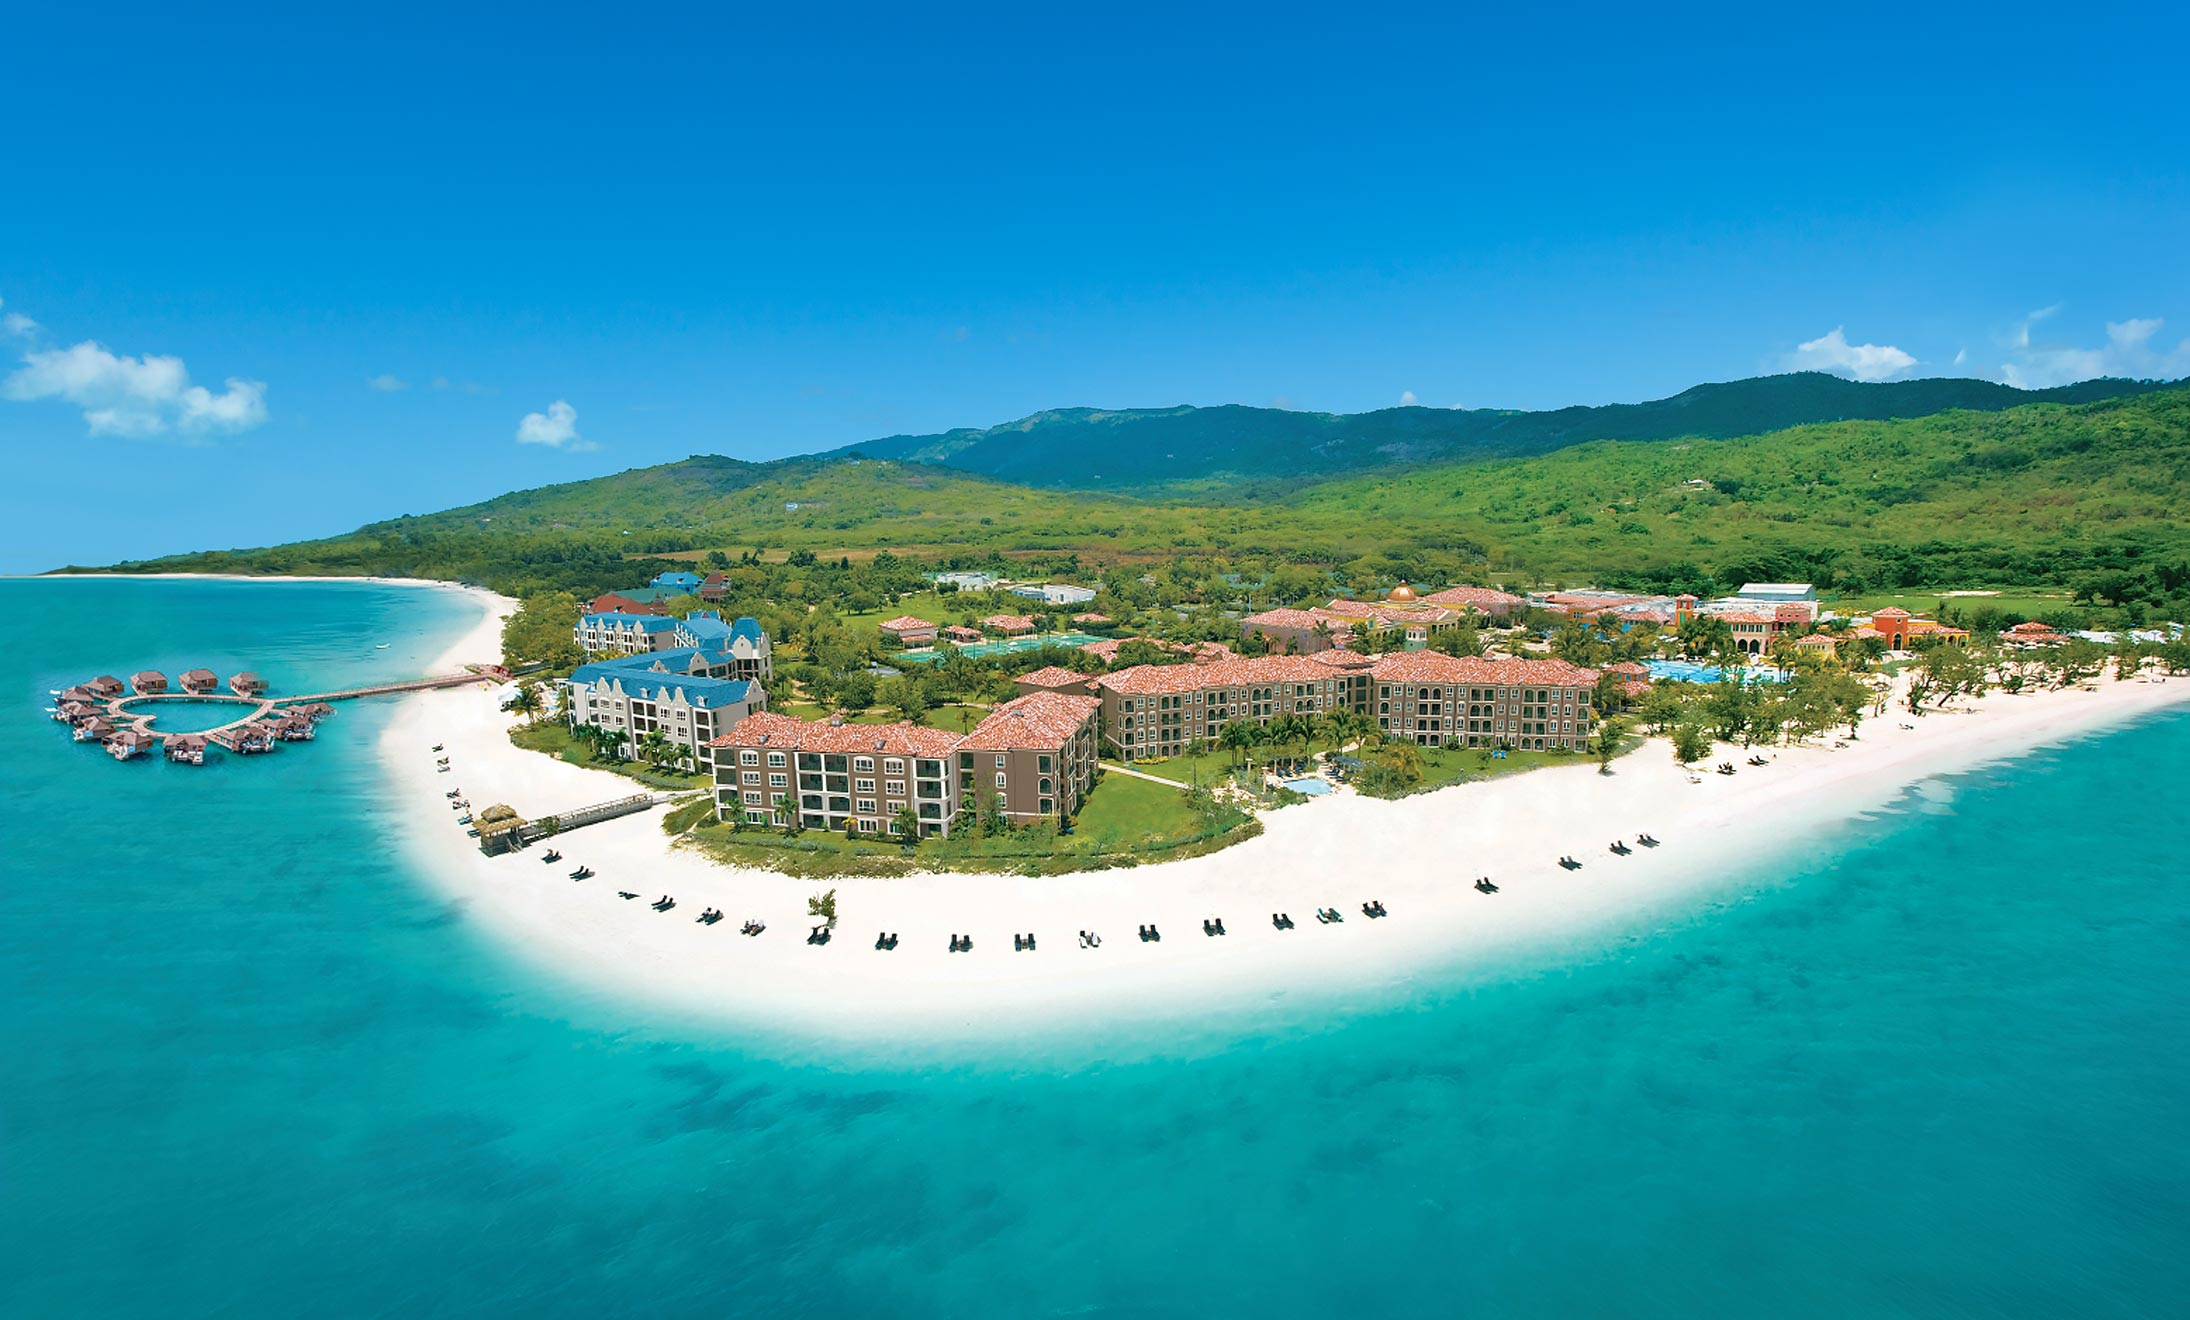 ba82a140f54461 Sandals Resorts - Five Star All-Inclusive Luxury Vacations in the ...